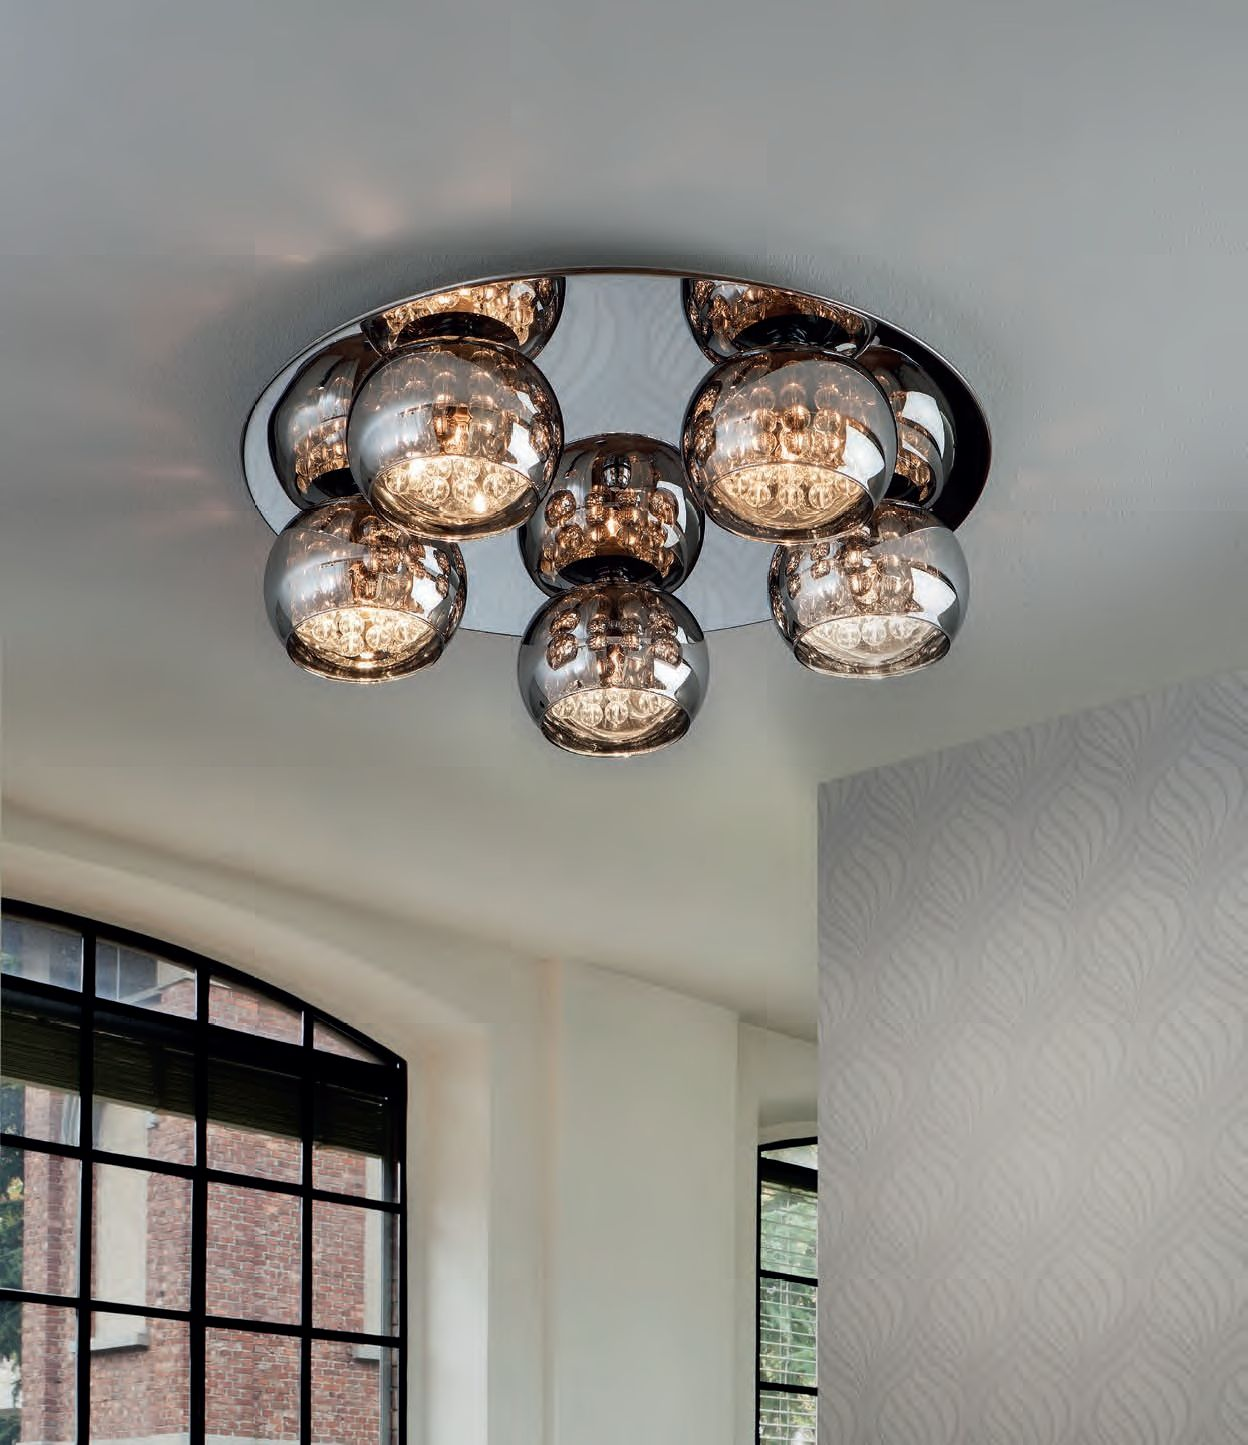 Flush Led Smoked Glass Bendant Light Would Be Great For Low Profile Ceilings Low Ceiling Lighting Low Ceiling Chandelier Ceiling Lights